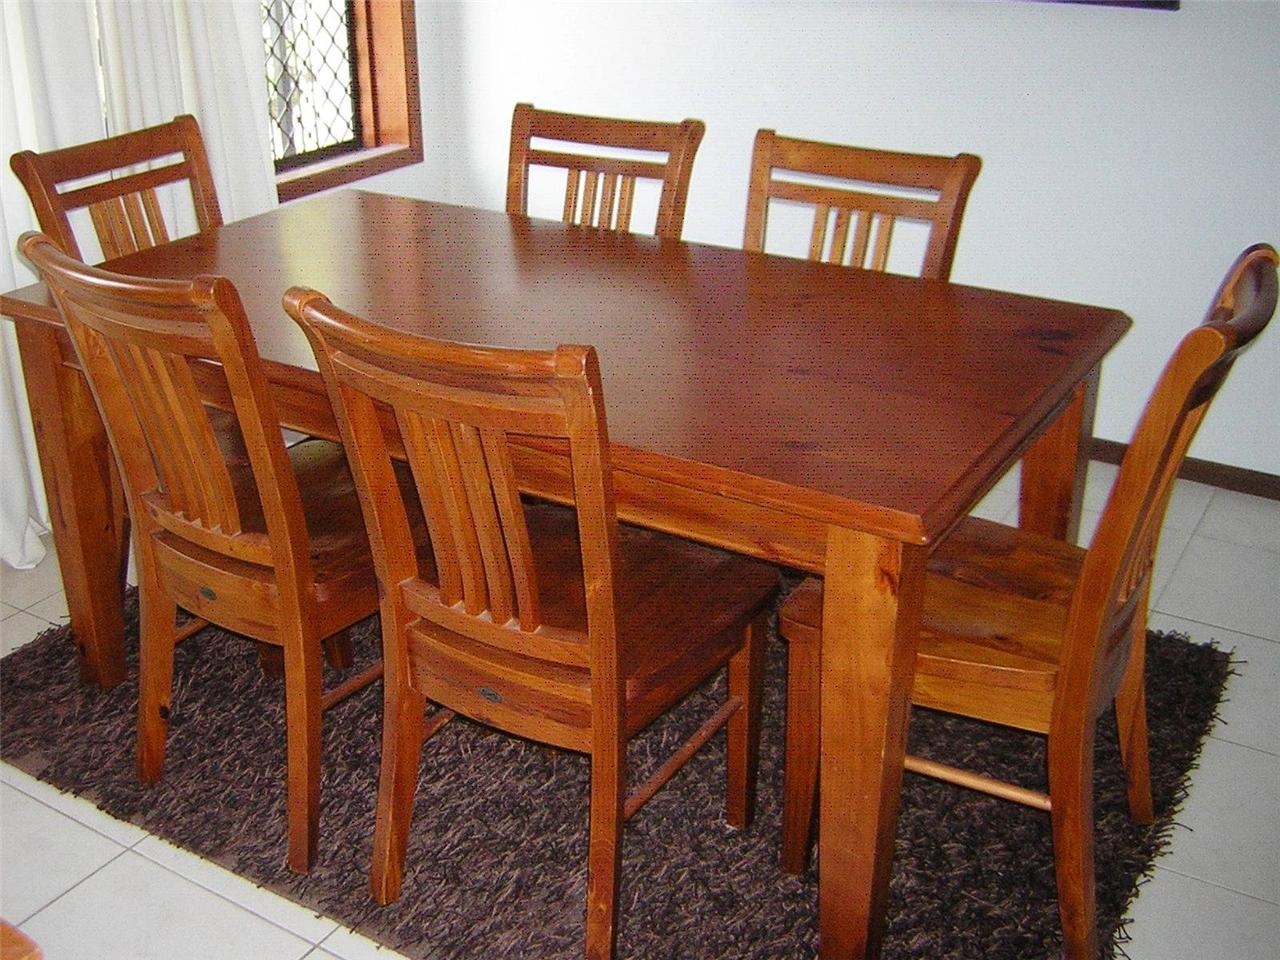 Balmoral Wooden 6 Seat Dining Table Chairs Set Kitchen  : 728440005o from www.ebay.com.au size 1280 x 960 jpeg 220kB